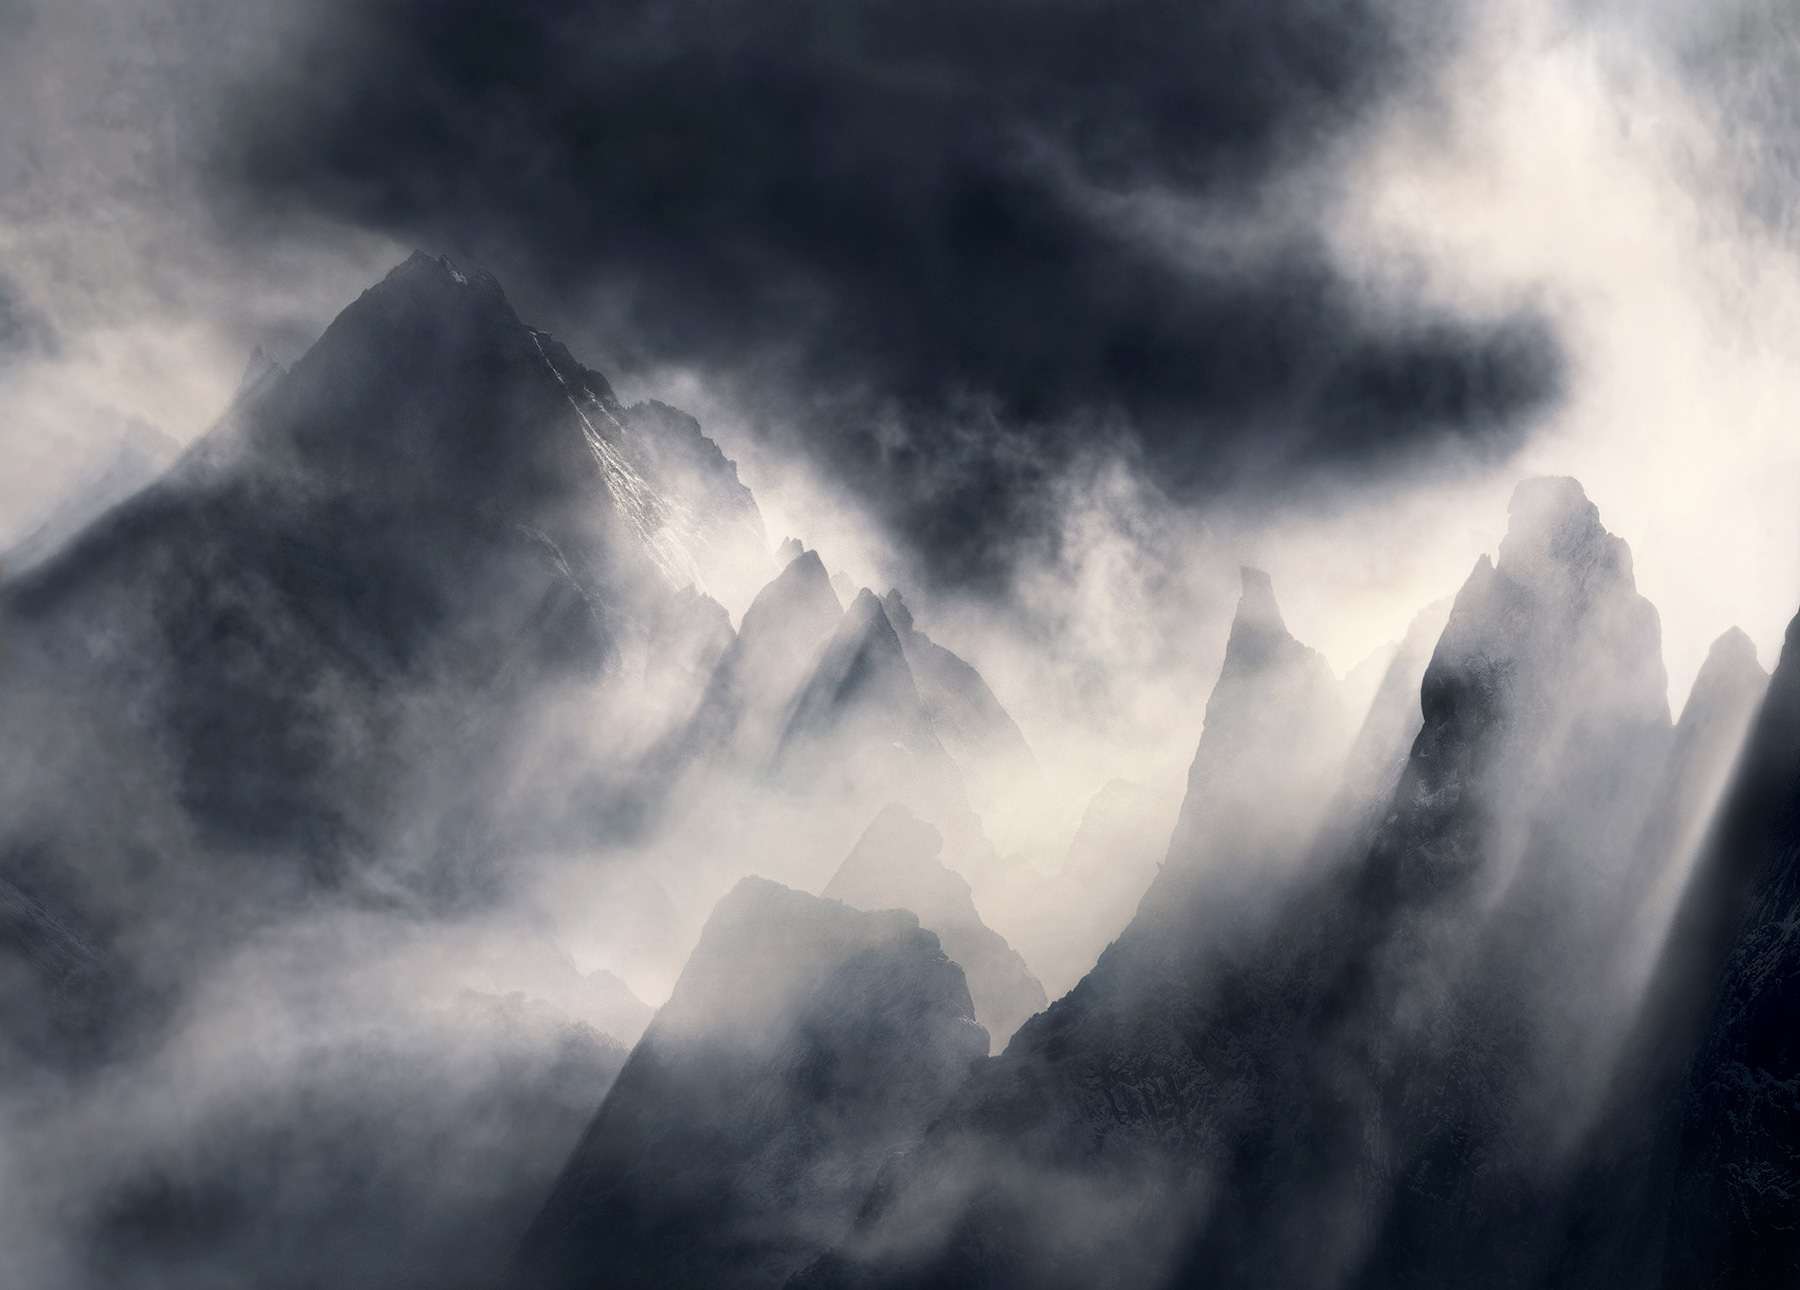 Jagged peaks catch the layers of light coming through the clearing storm.